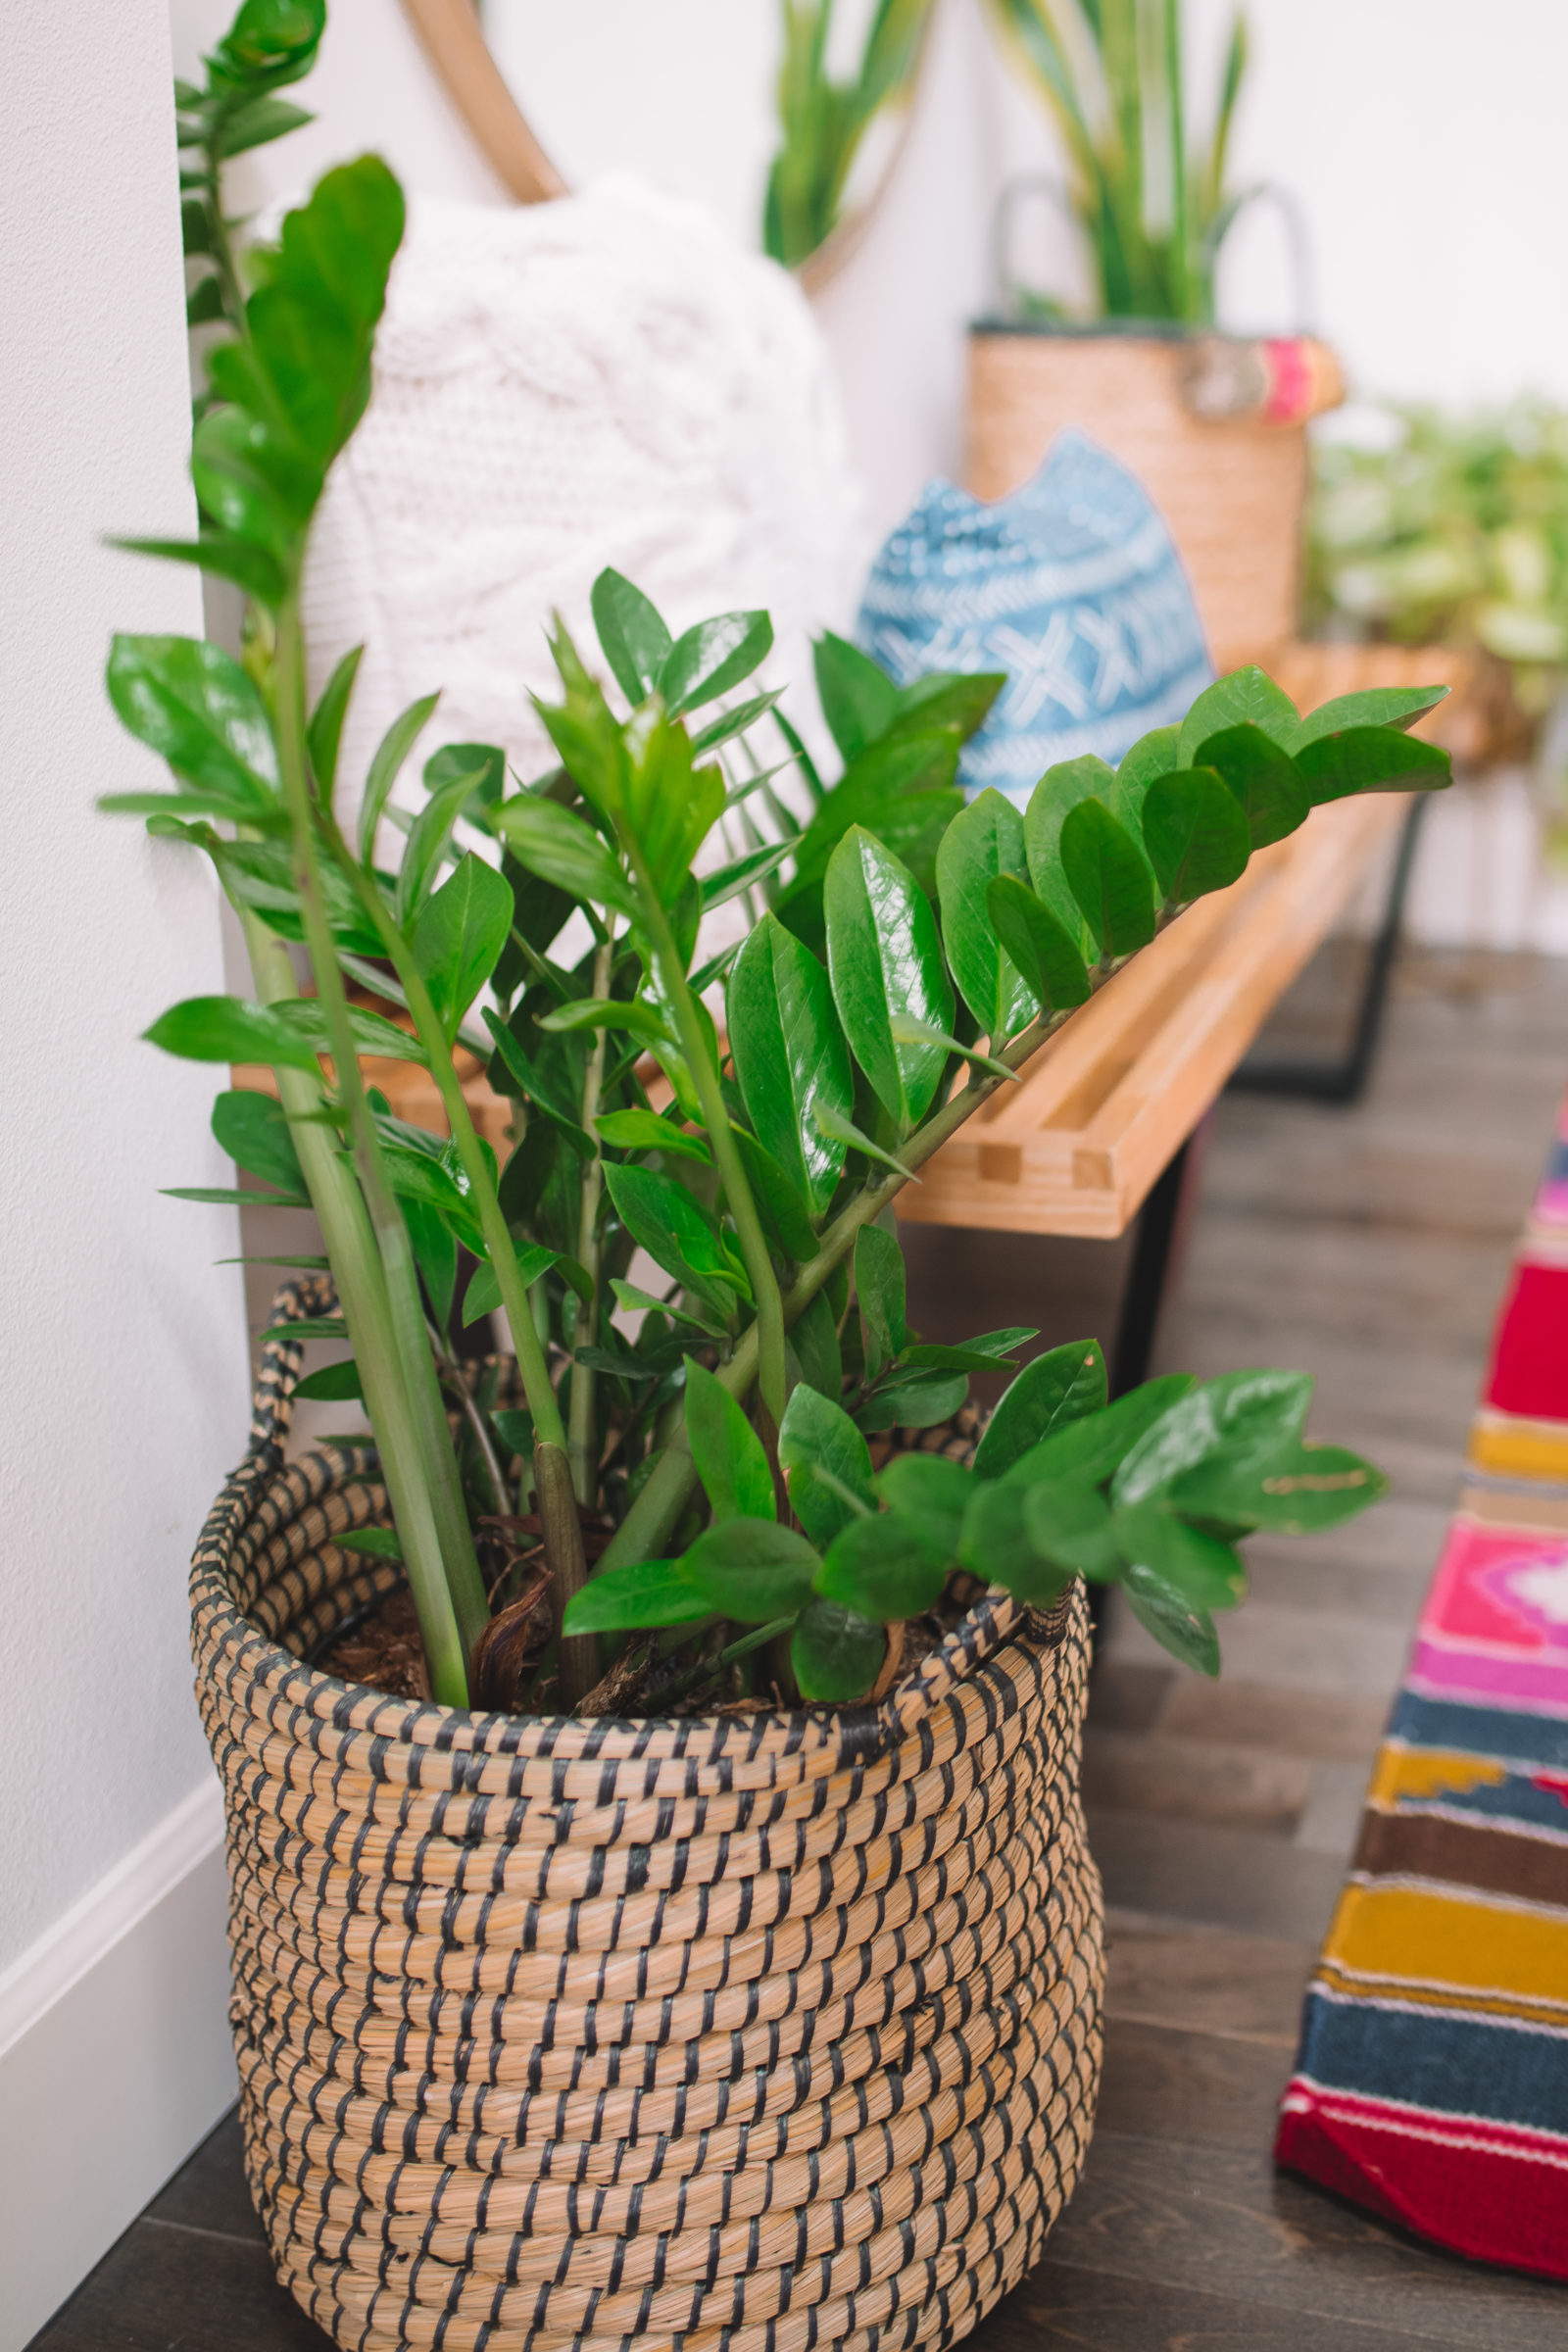 7 Common Houseplants: Air-Purifying Indoor Plants on best floor plants, best plants for shade, best house design, best bulb plants, best house architecture, best aquatic plants, best container plants, best hedgerow plants, best aquarium plants, best house materials, best succulent plants, best fake plants, best sidewalk plants, best cemetery plants, best house accessories, best patio plants, best office plants, best tree houses, indoor plants, best curb appeal plants,